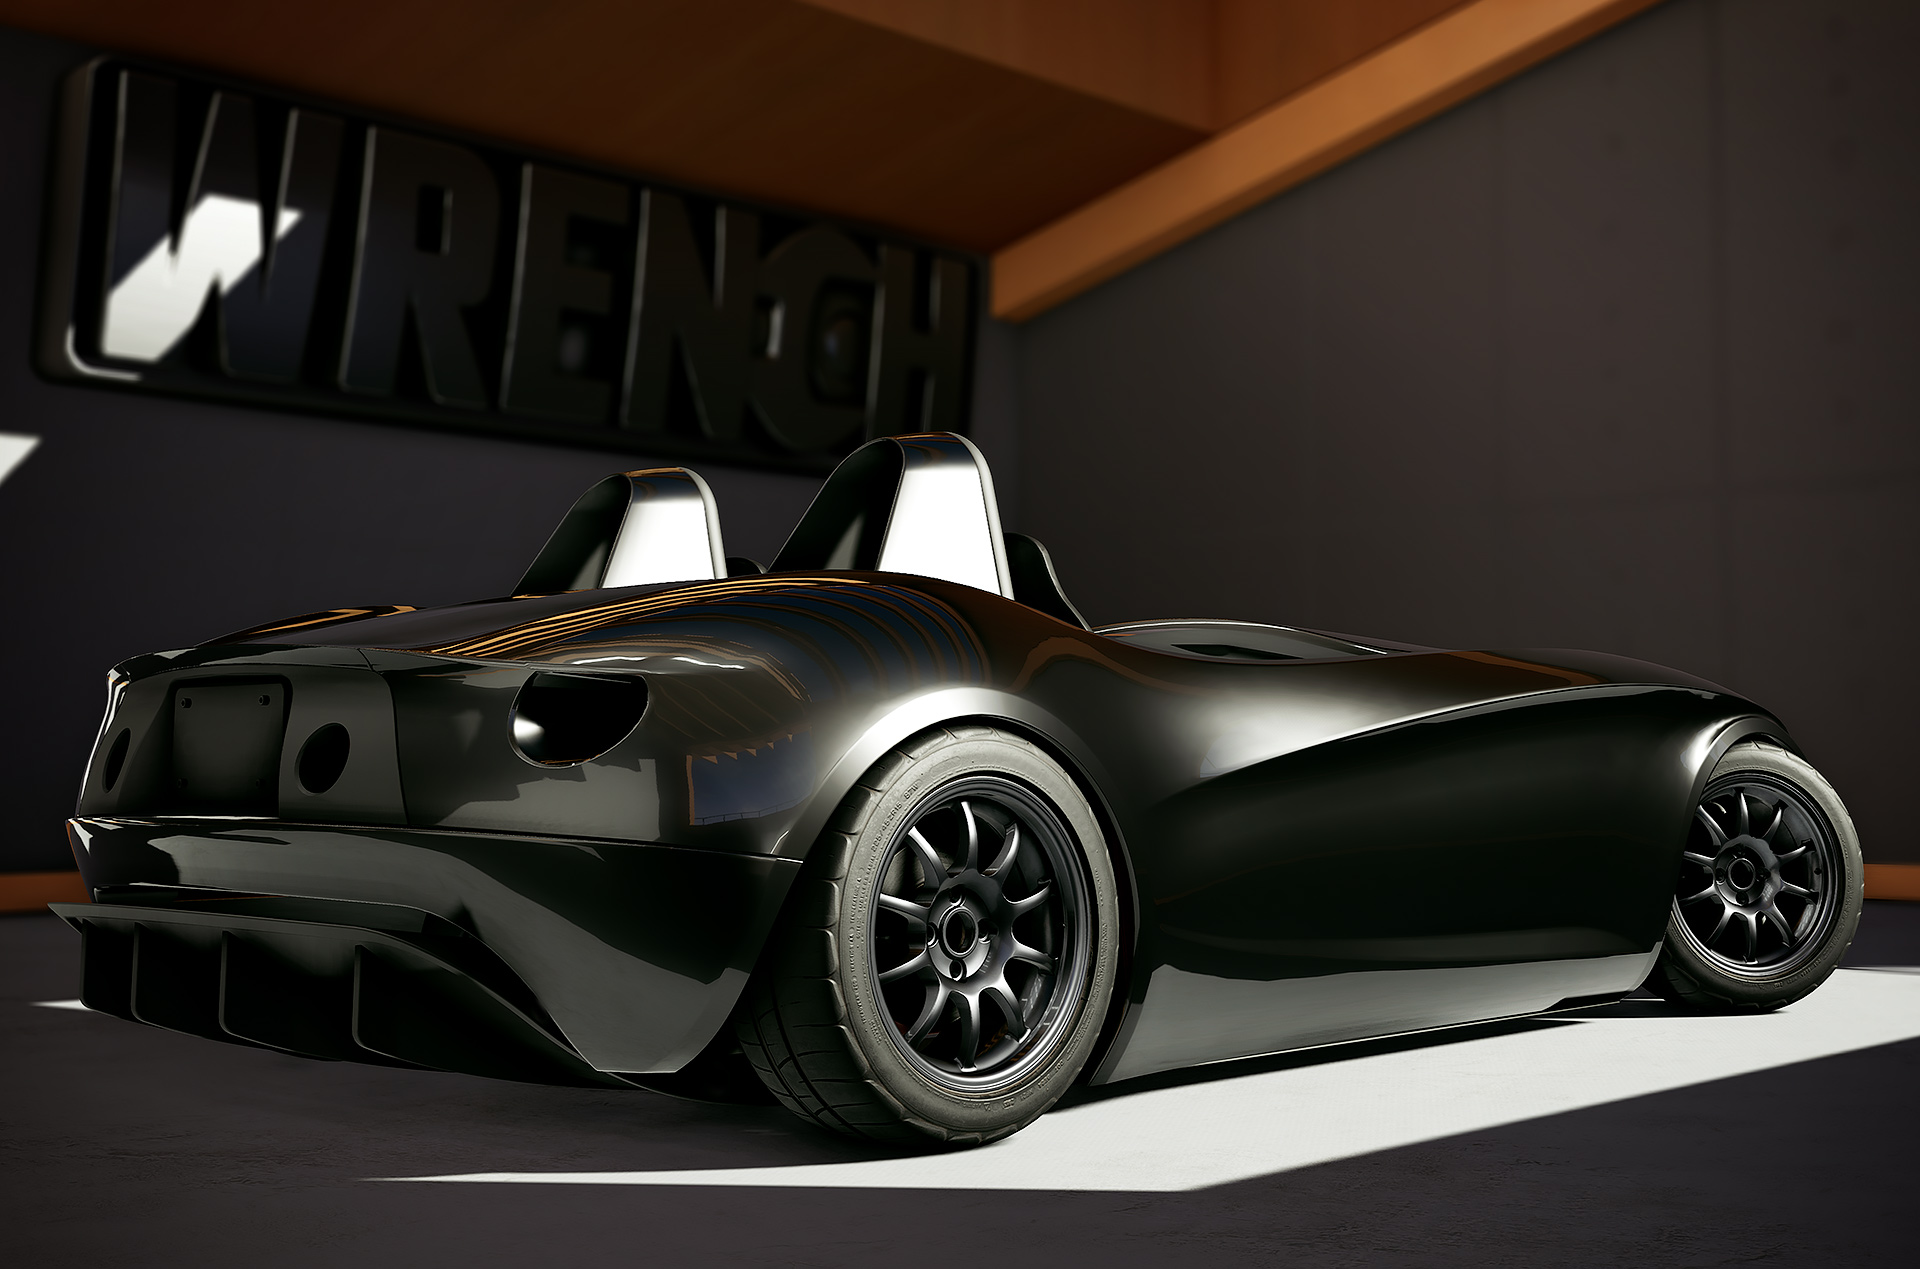 Wrench Will Let You Build Out A Car In Virtual Reality – Available Now